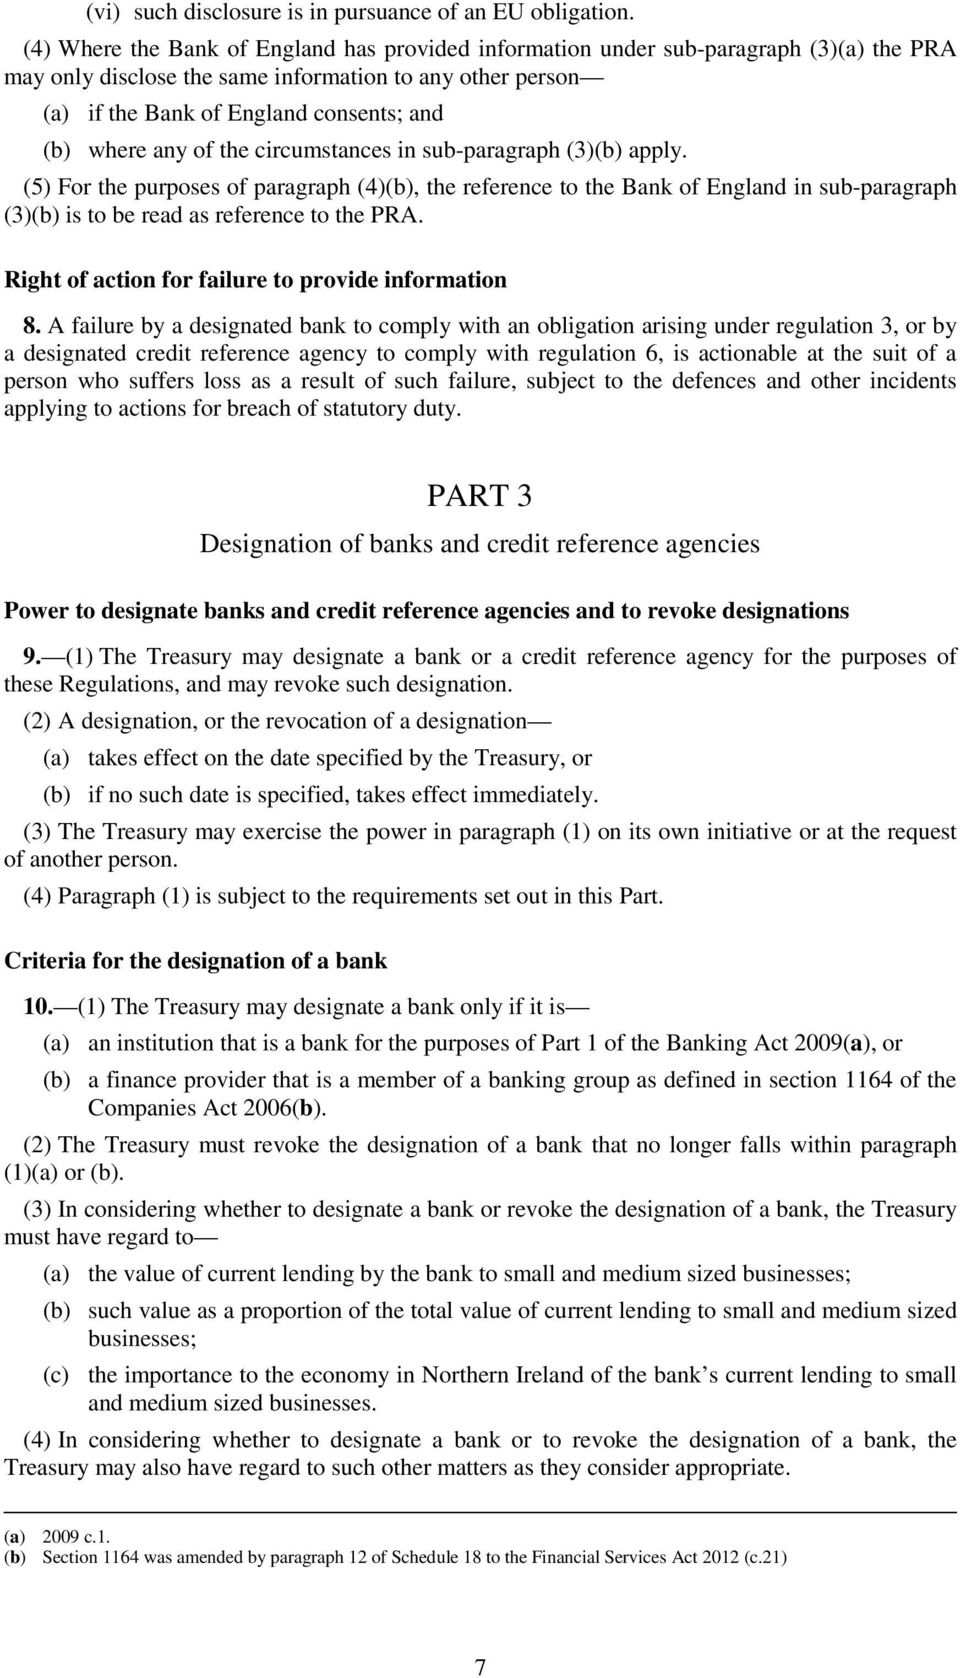 any of the circumstances in sub-paragraph (3)(b) apply. (5) For the purposes of paragraph (4)(b), the reference to the Bank of England in sub-paragraph (3)(b) is to be read as reference to the PRA.